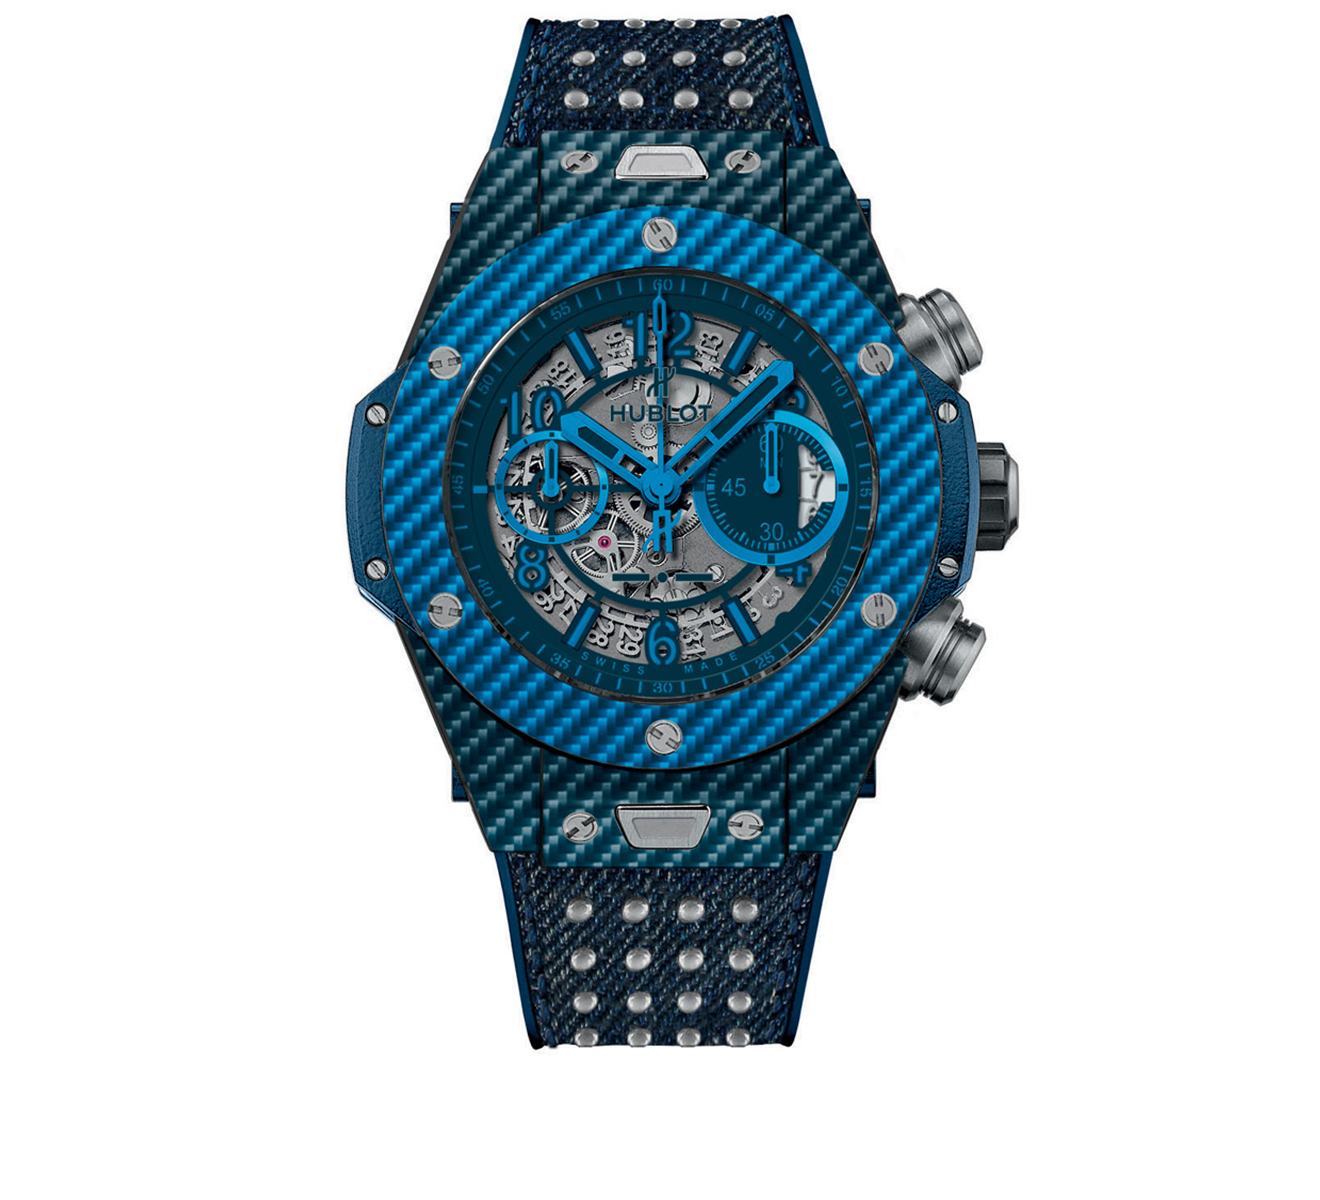 Часы Unico Italia Independent Blue HUBLOT Big Bang 411.YL.5190.NR.ITI15 - фото 1 – Mercury